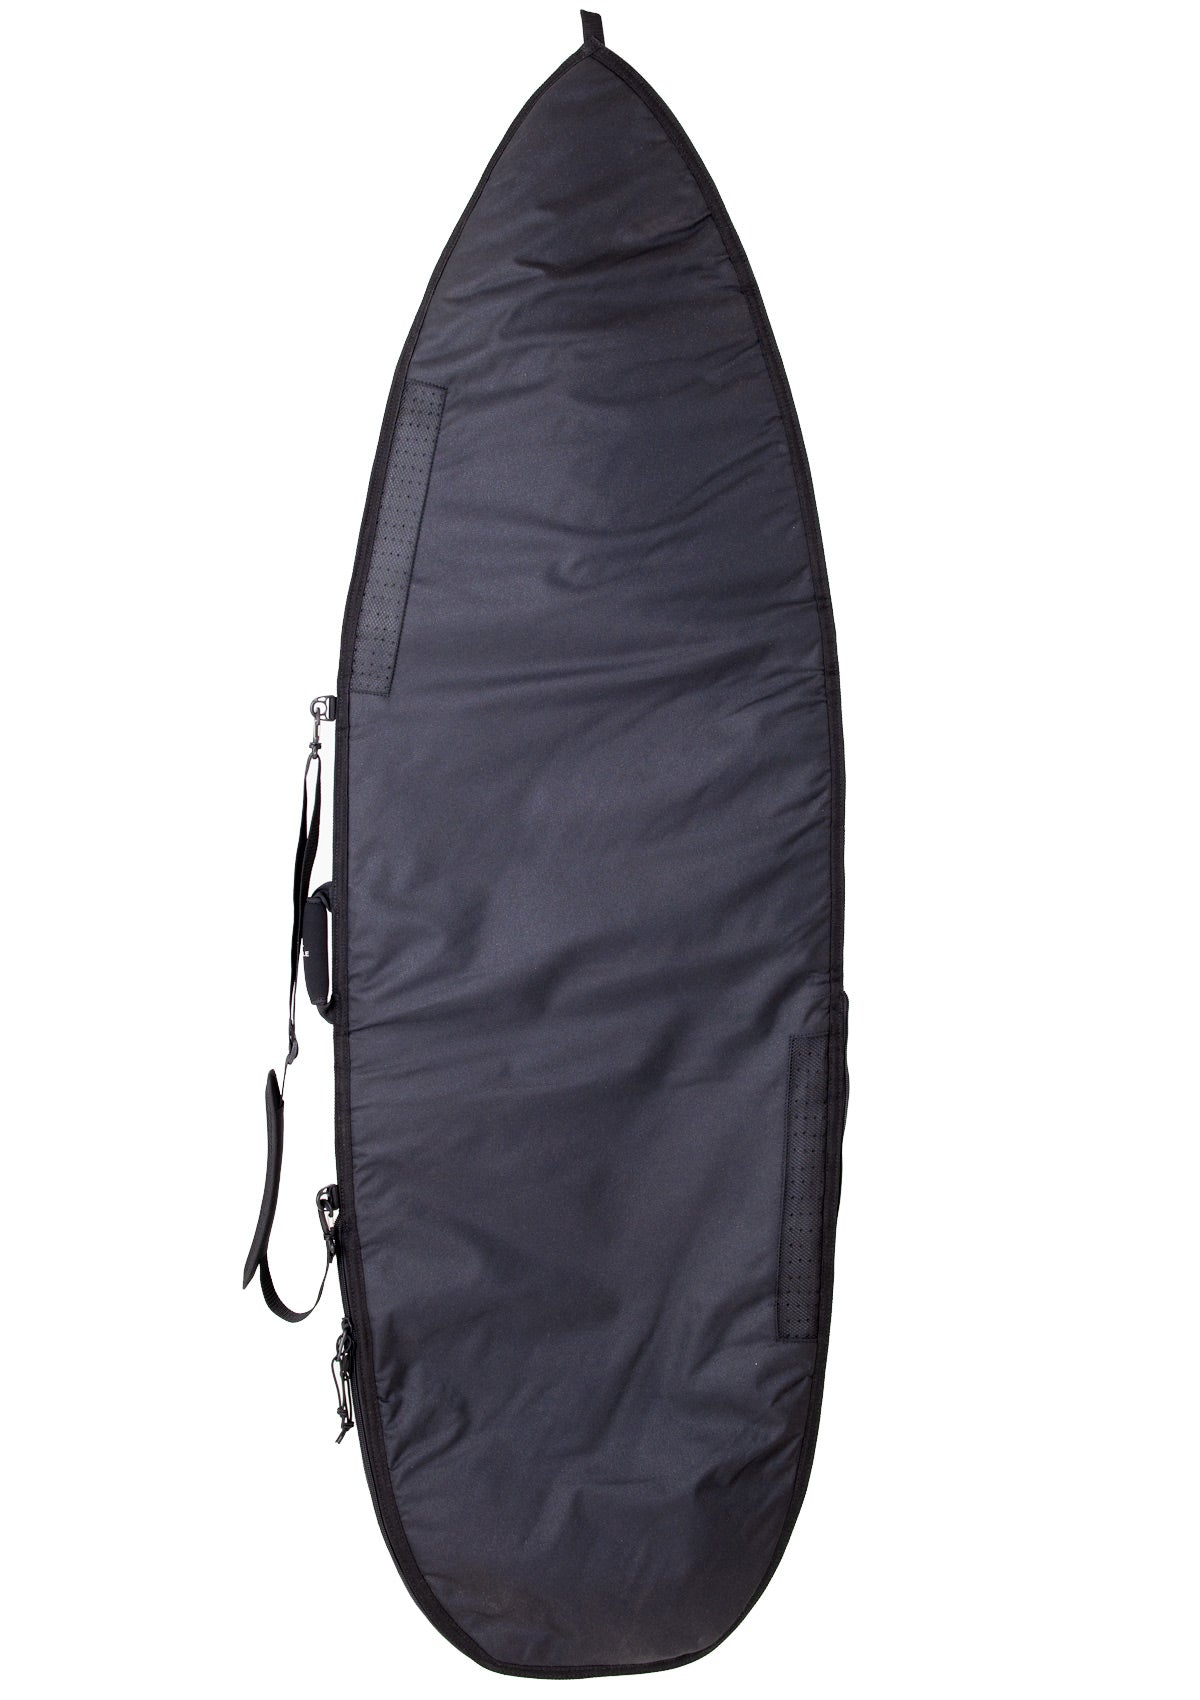 needessentials single travel surfing boardbag board bag